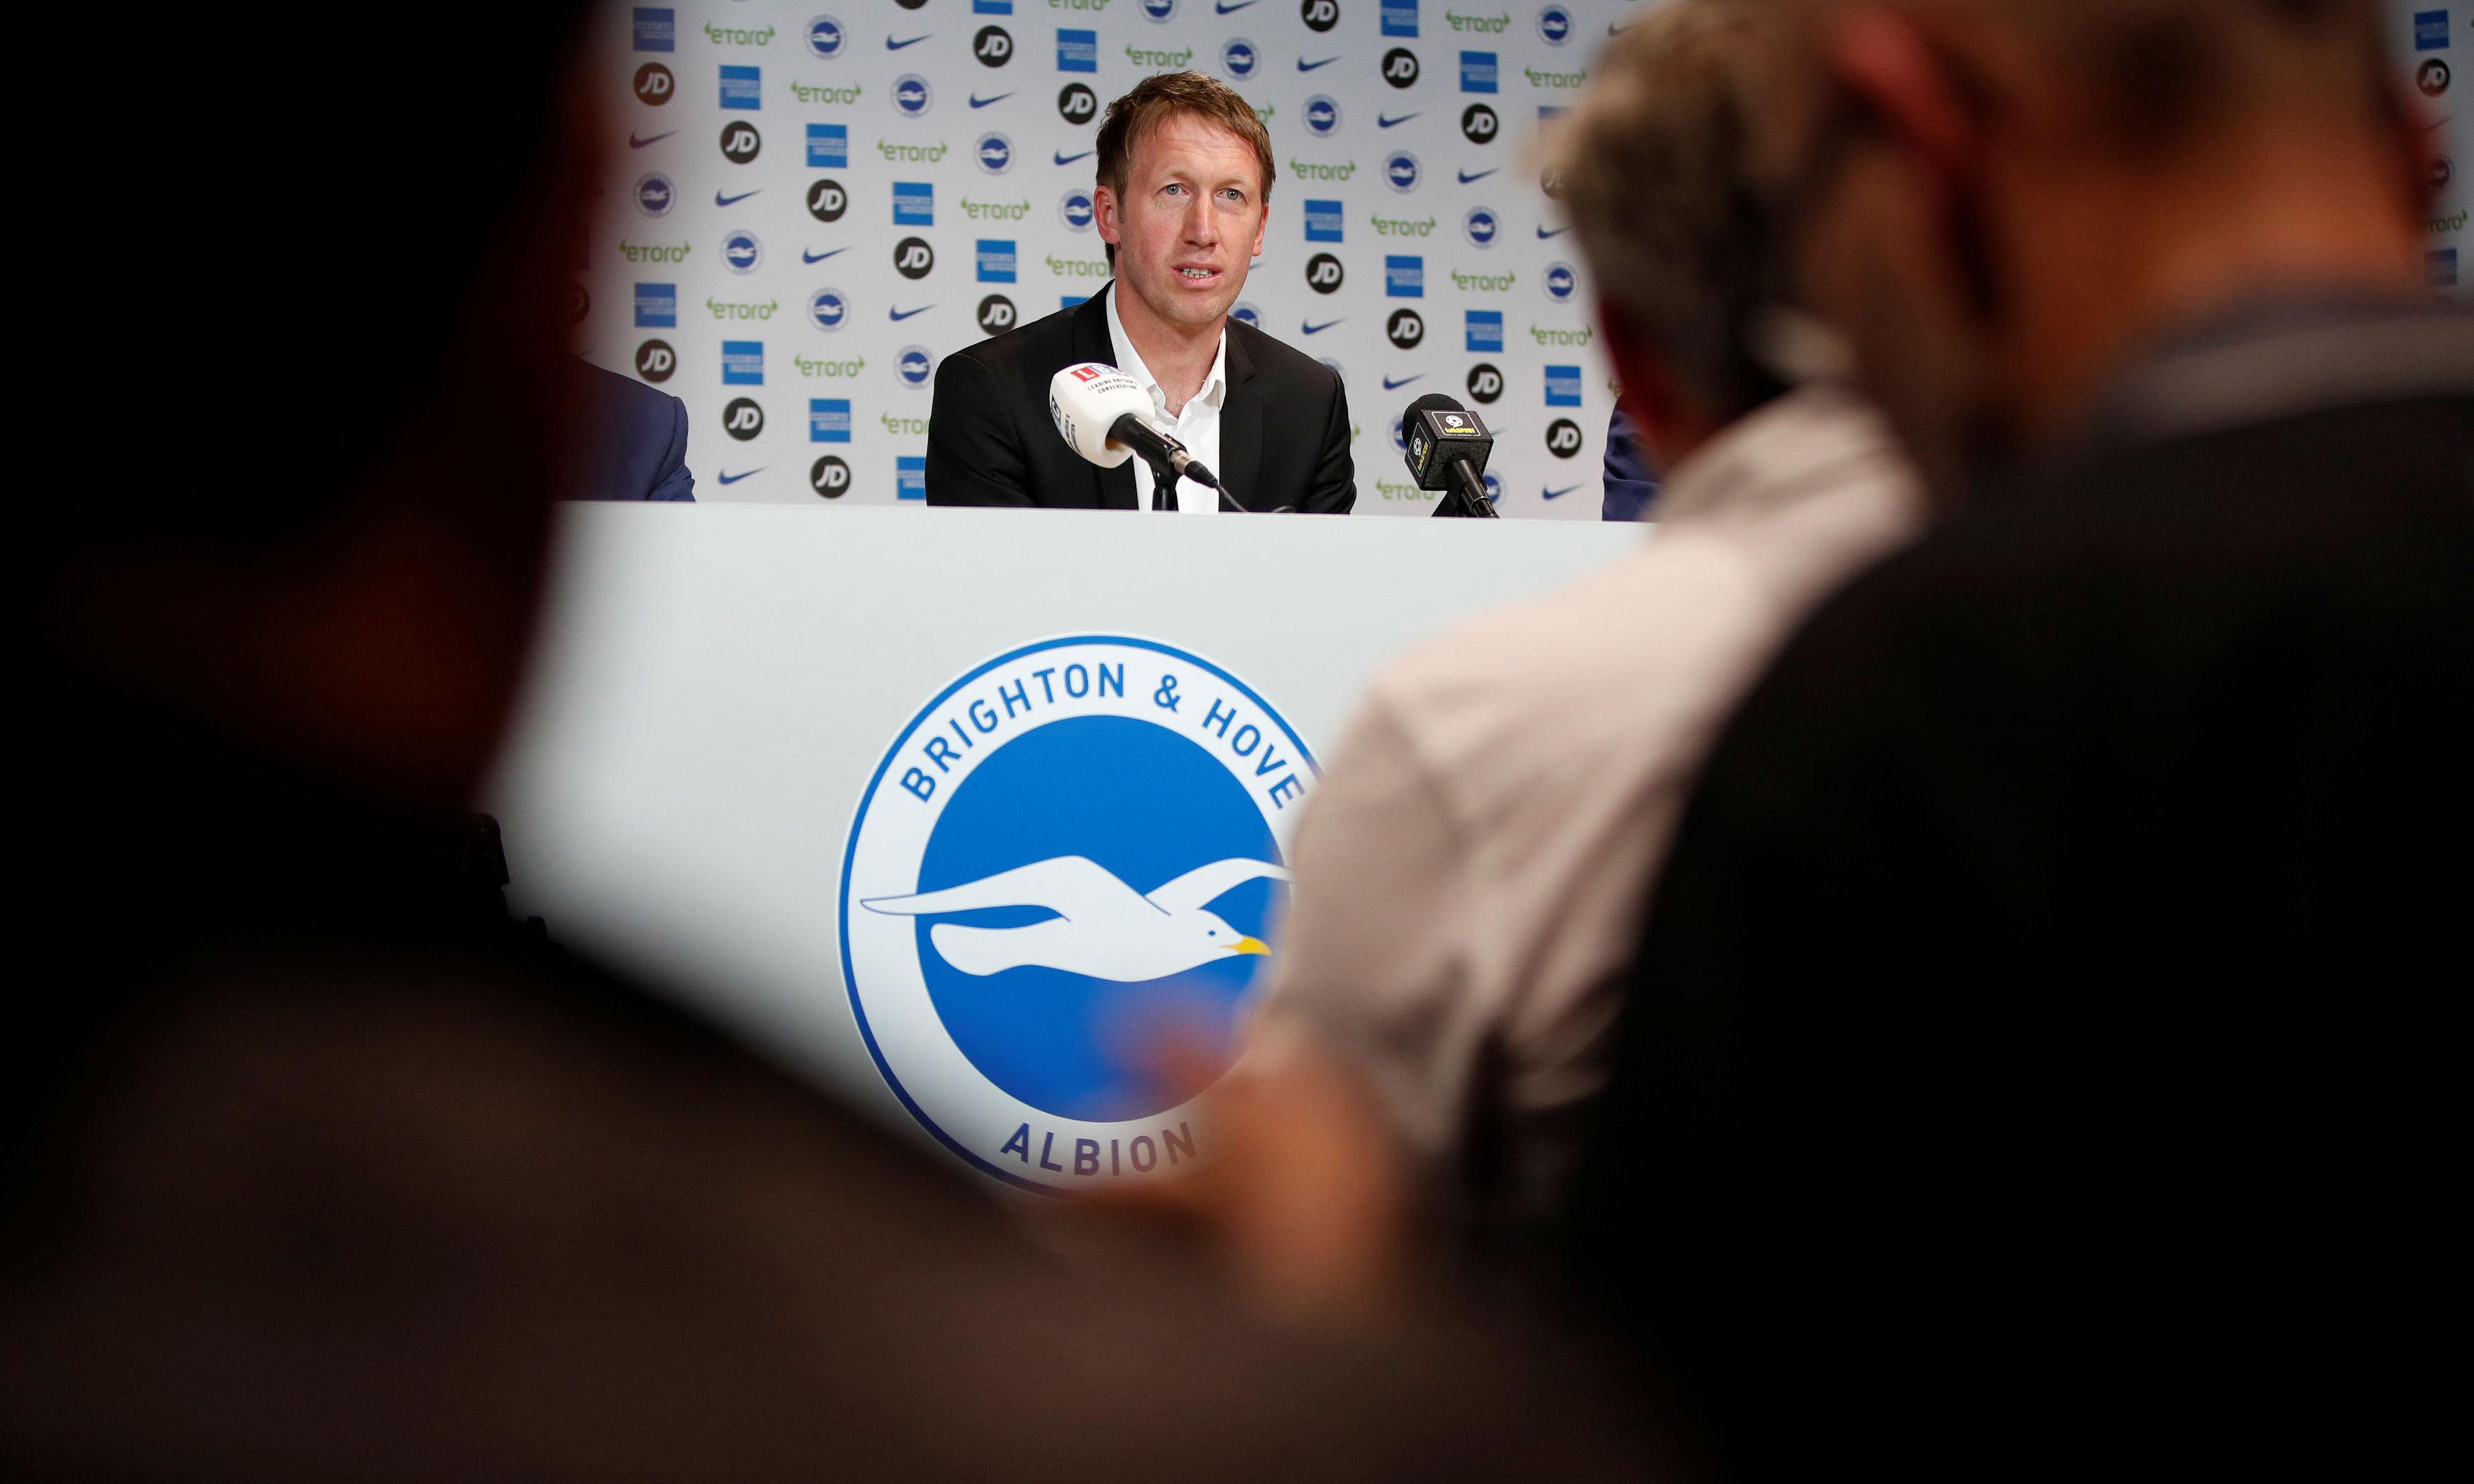 Graham Potter's appointment is not a gamble, says Brighton's owner